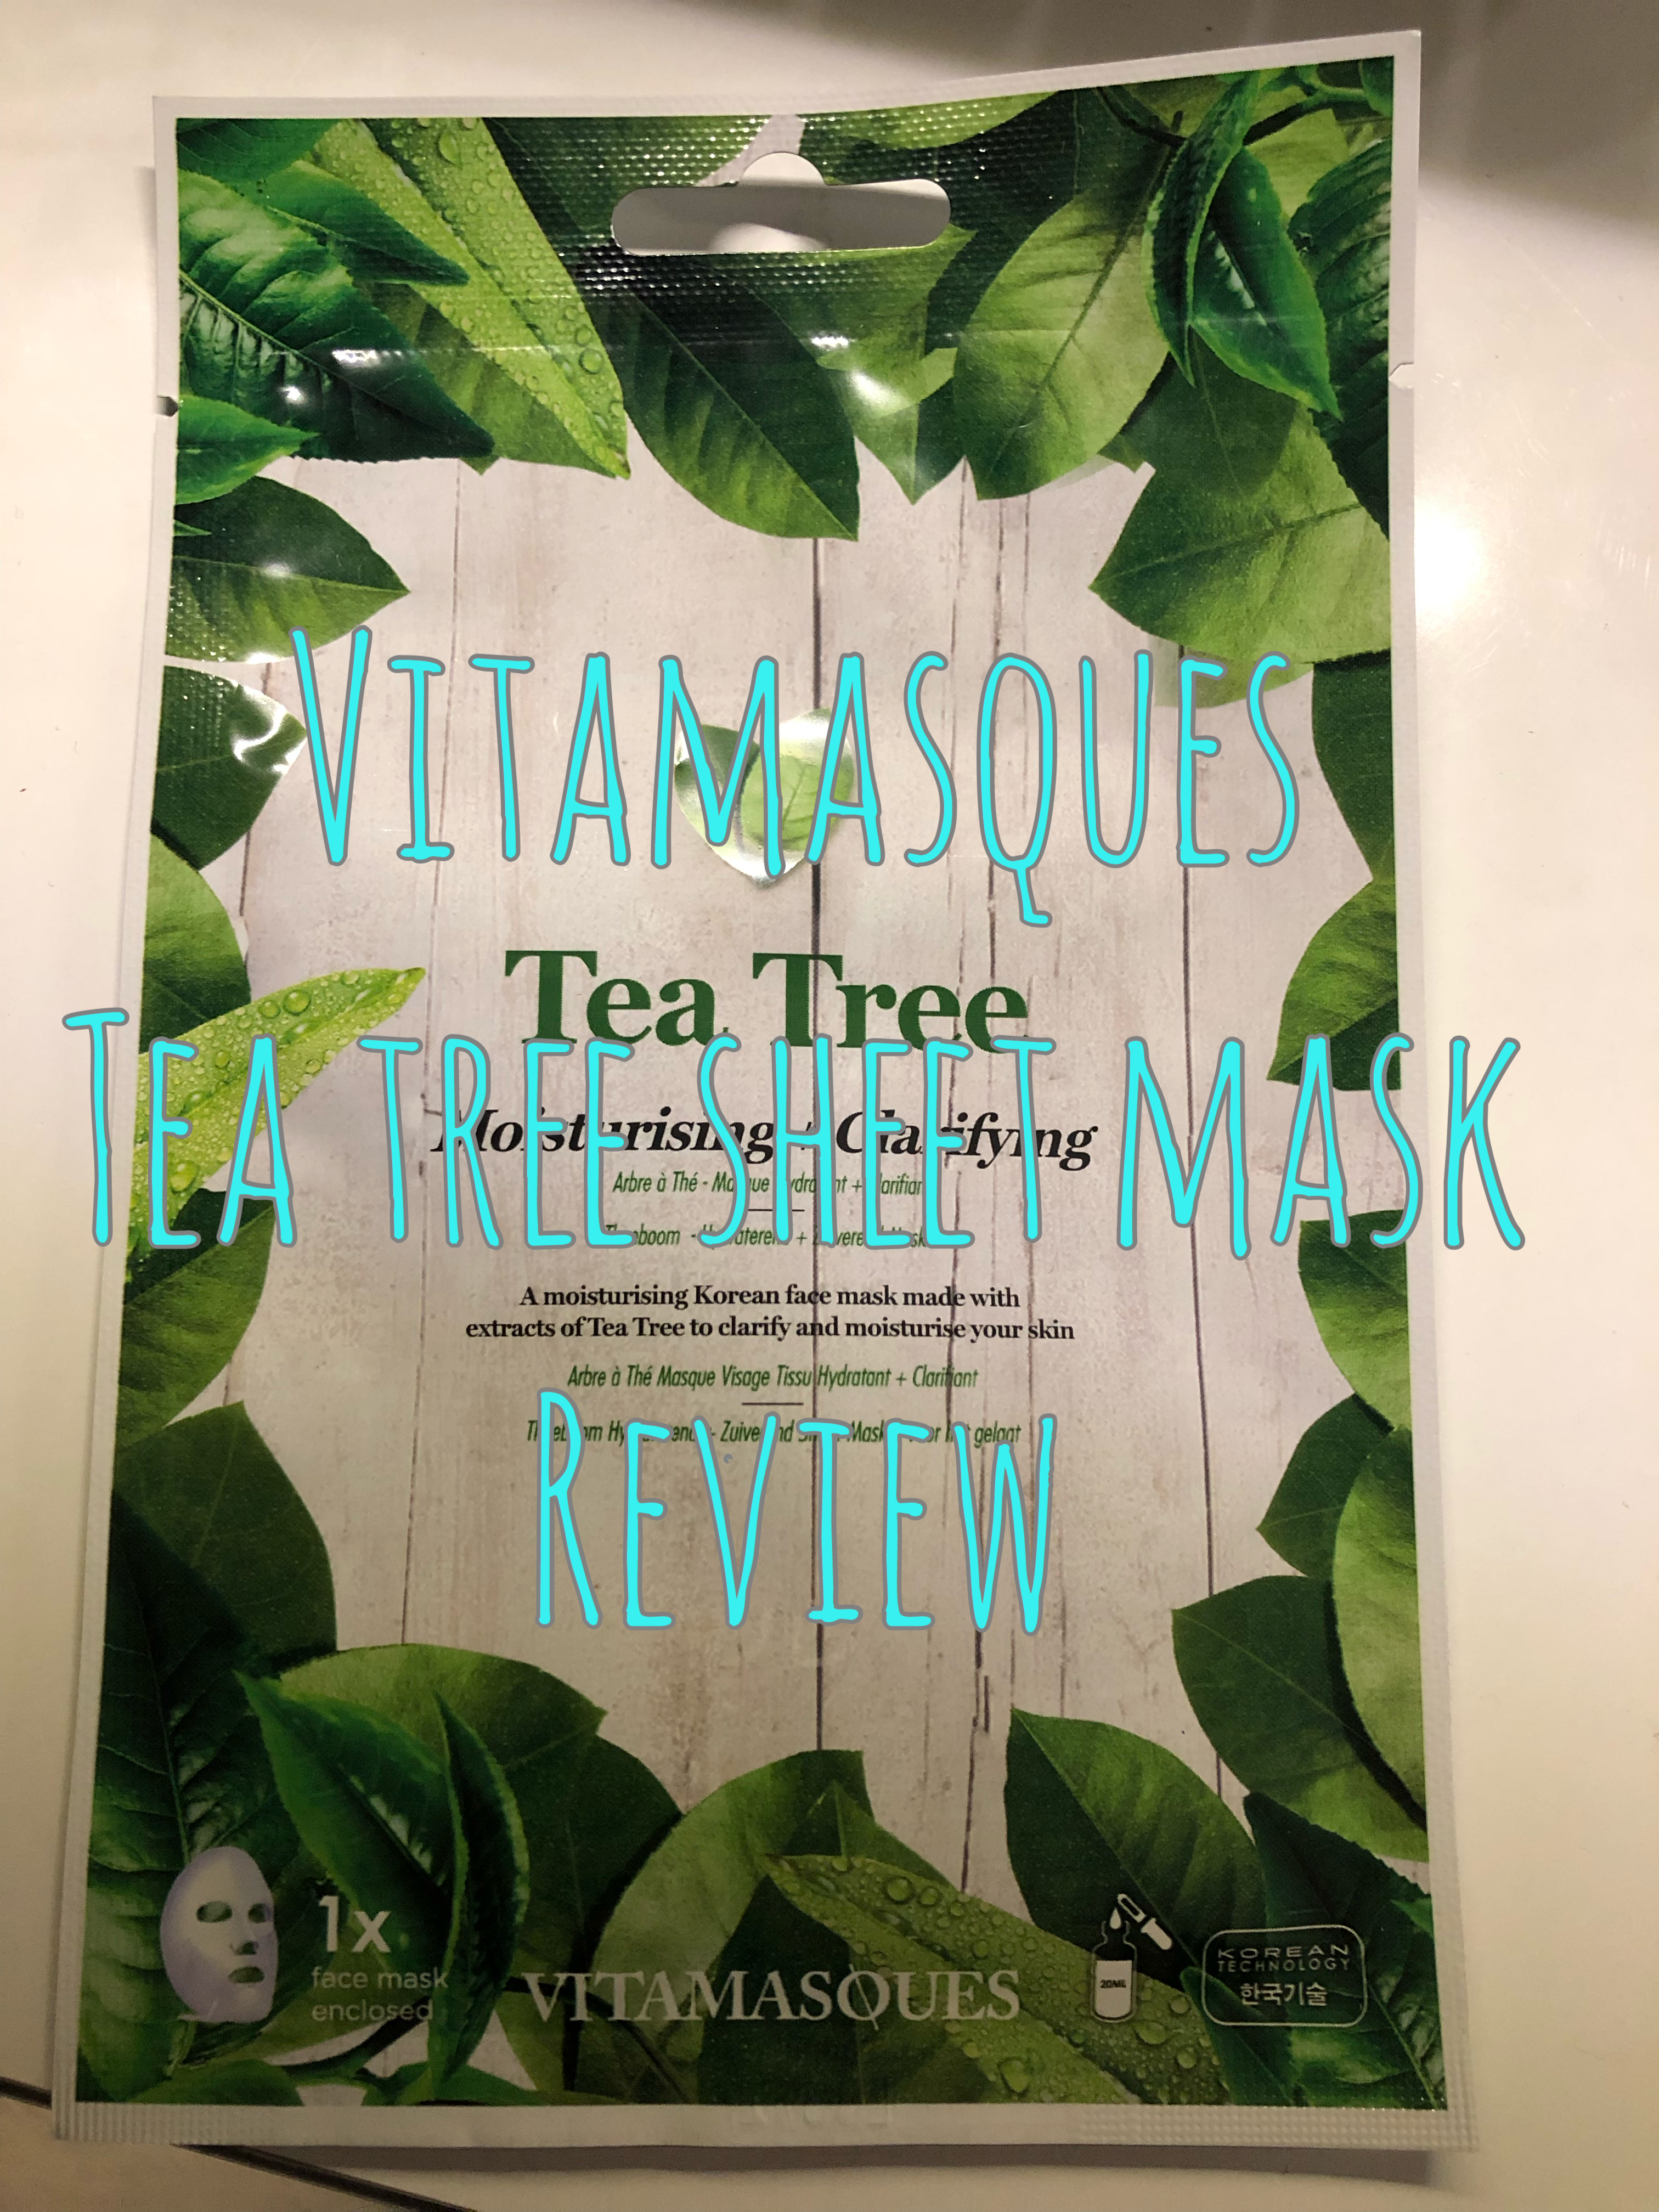 Vitamasques Tea Tree Face Mask Review graphic